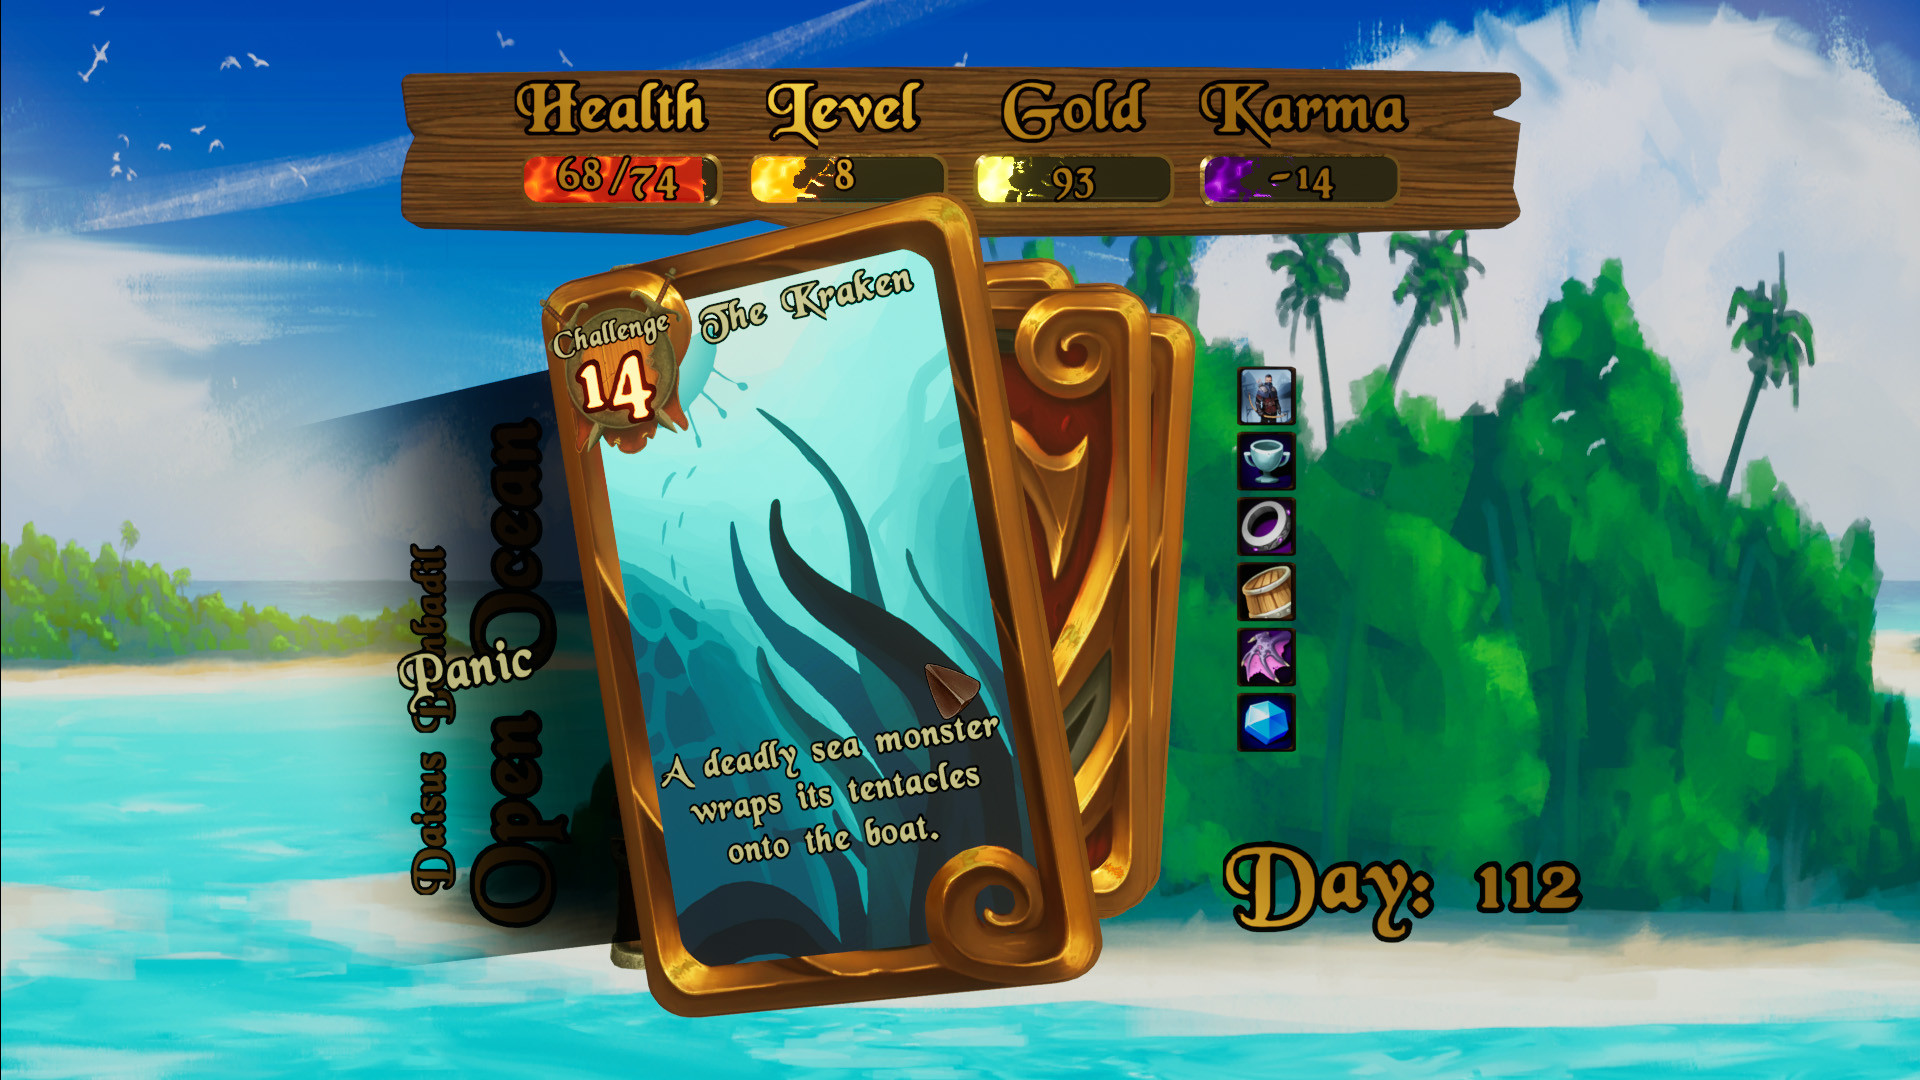 event card showing The Kraken attacking, with the player leaning towards the decision